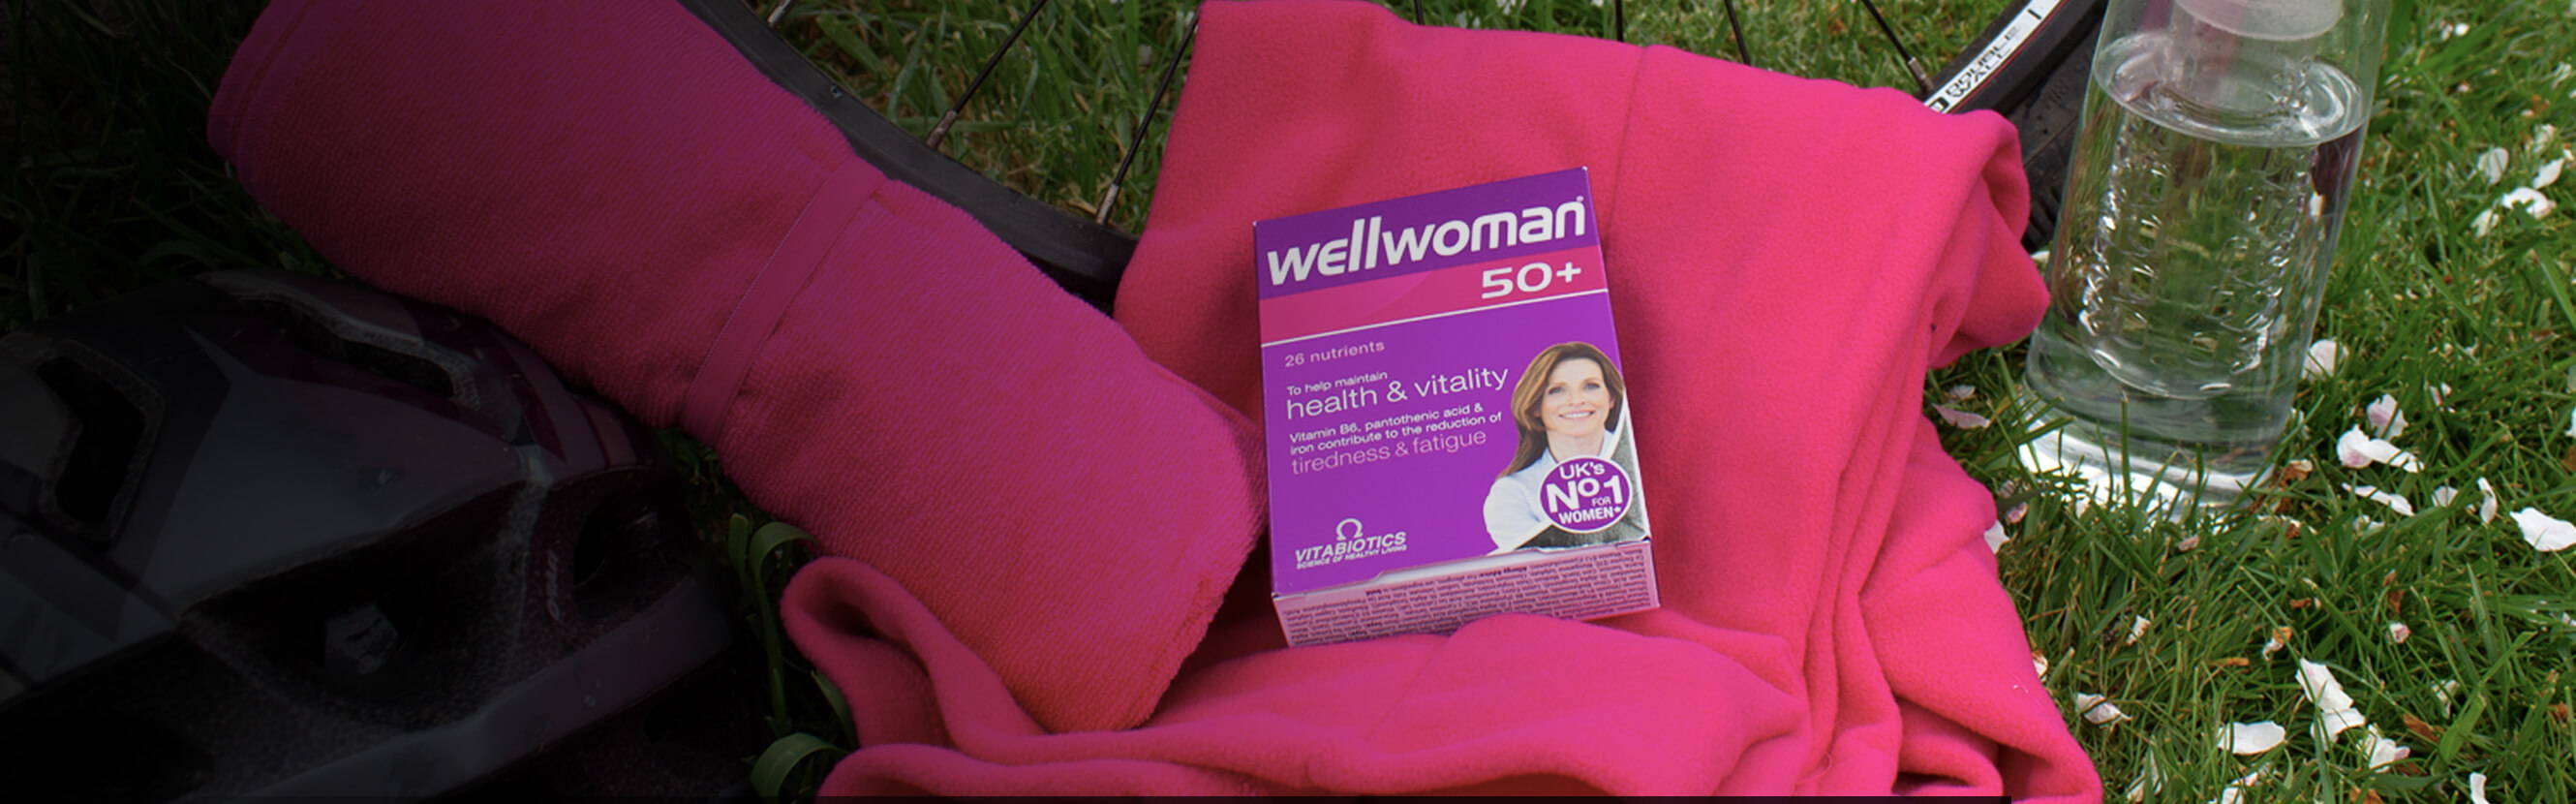 Wellwoman 50+ Pack On The Grass